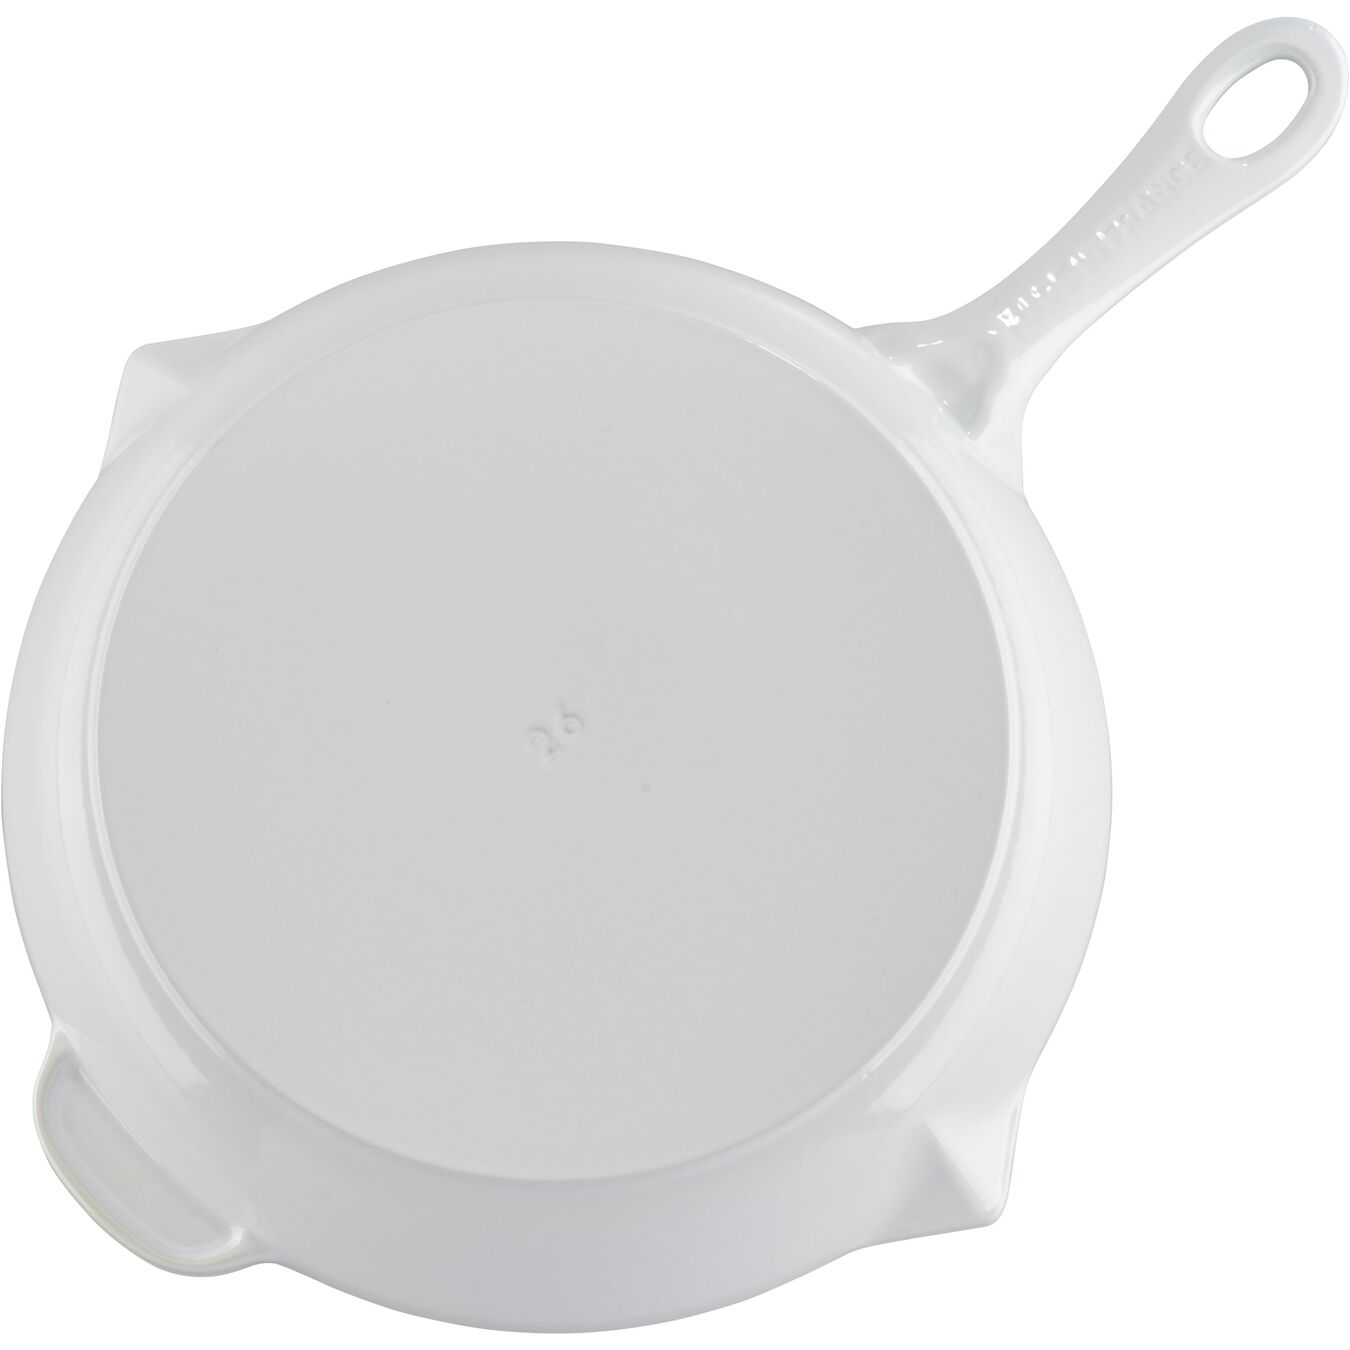 10-inch, Frying pan, white,,large 4